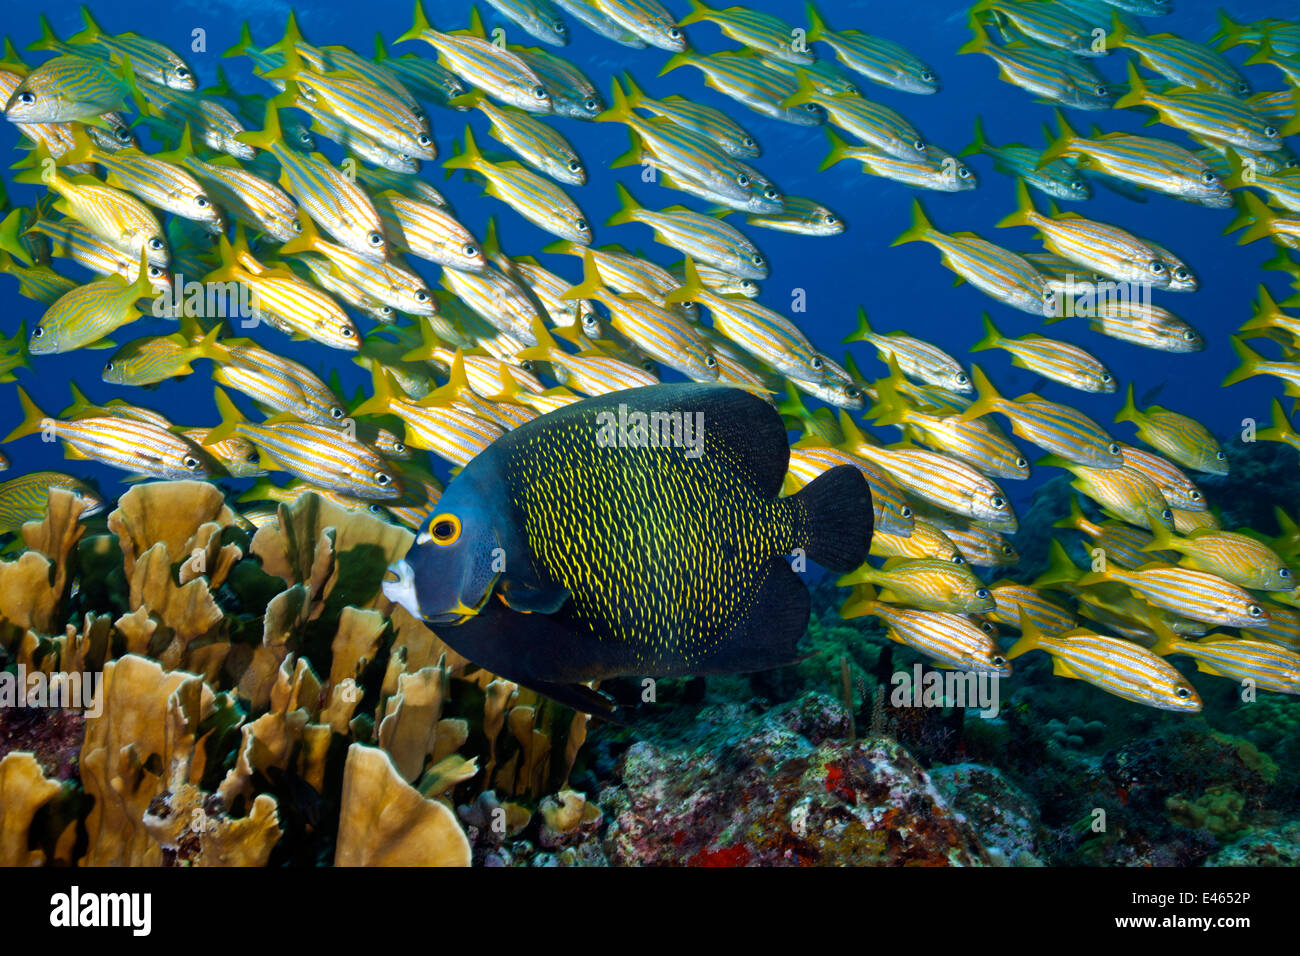 French Angelfish (Pomacanthus paru) with a Smallmouth Grunt (Haemulon chrysargyreum) and Blade Fire Coral (Millepora - Stock Image